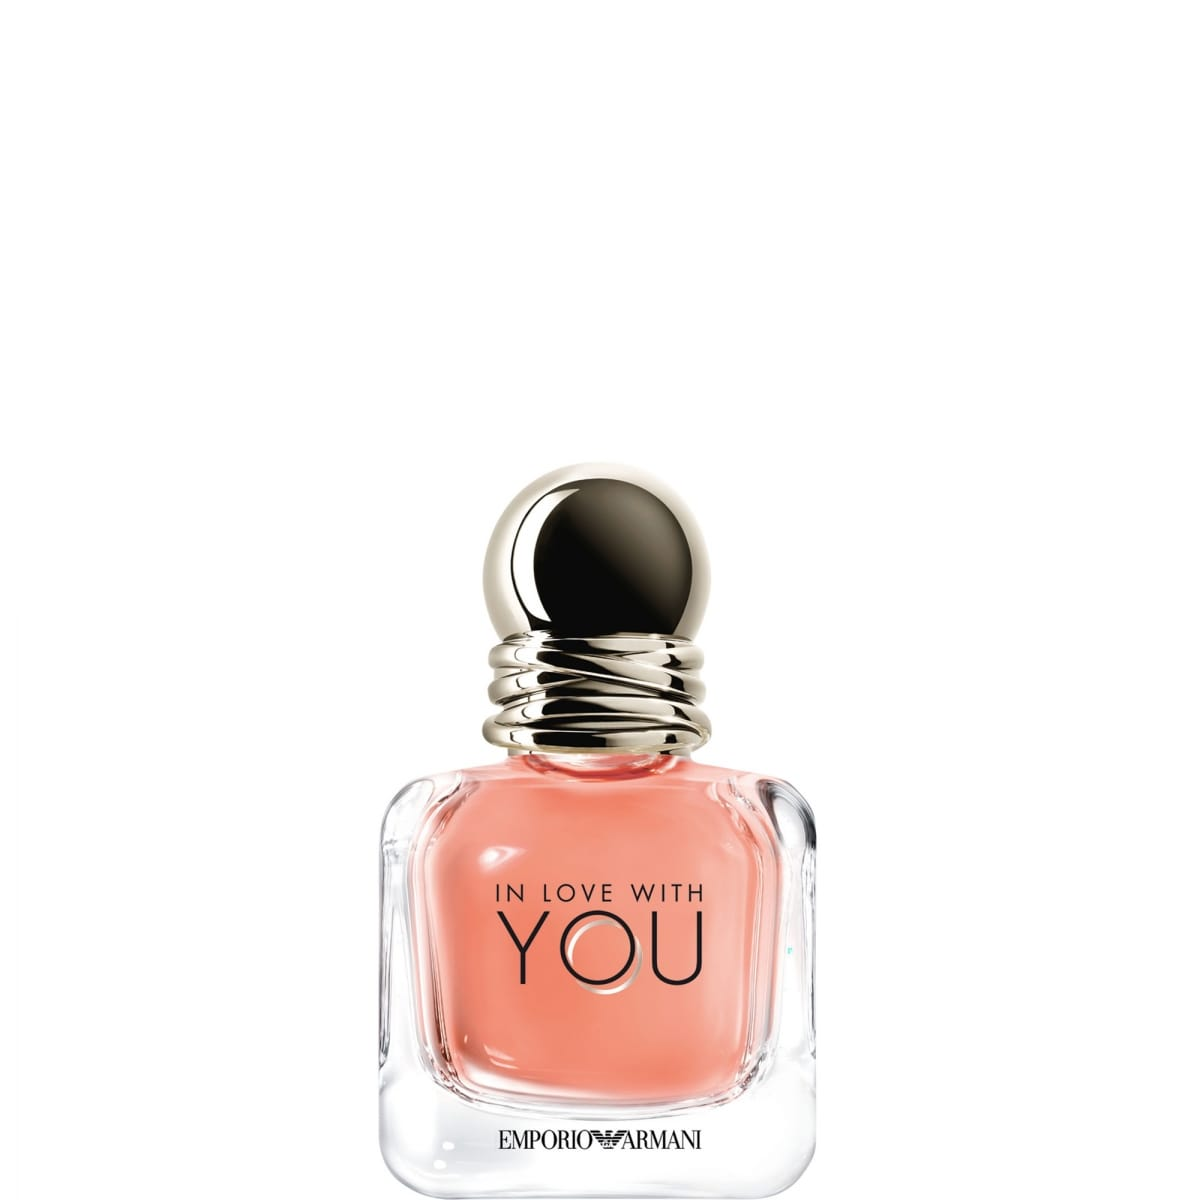 Emporio In Armani De With You Eau Parfum Love EWIY2HD9e